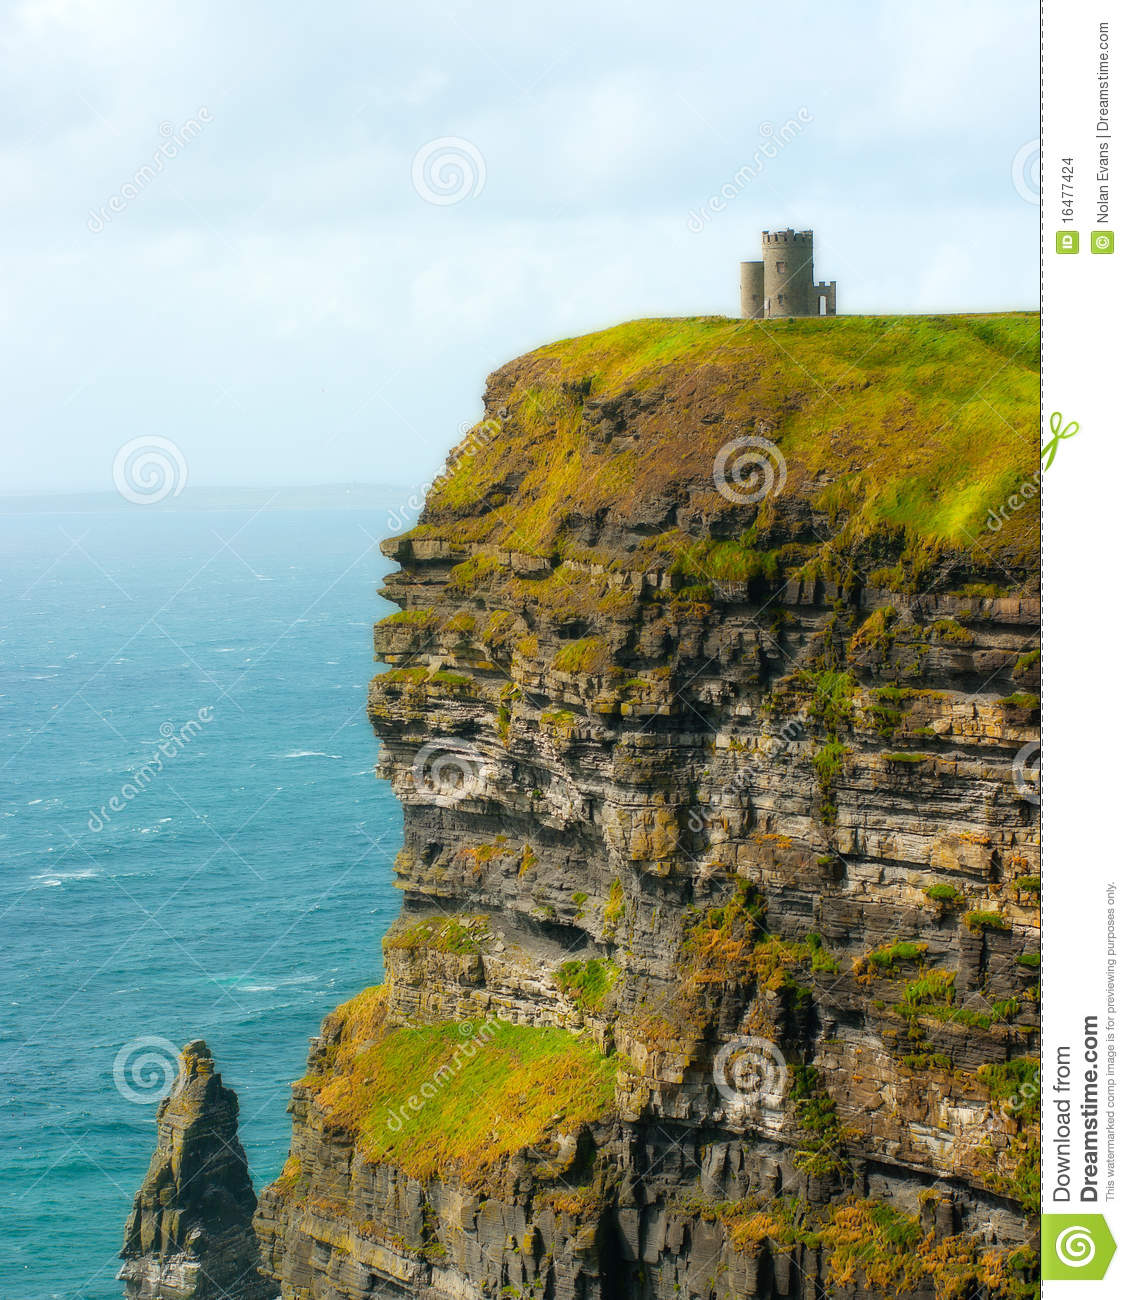 Tower on the Cliffs of Moher